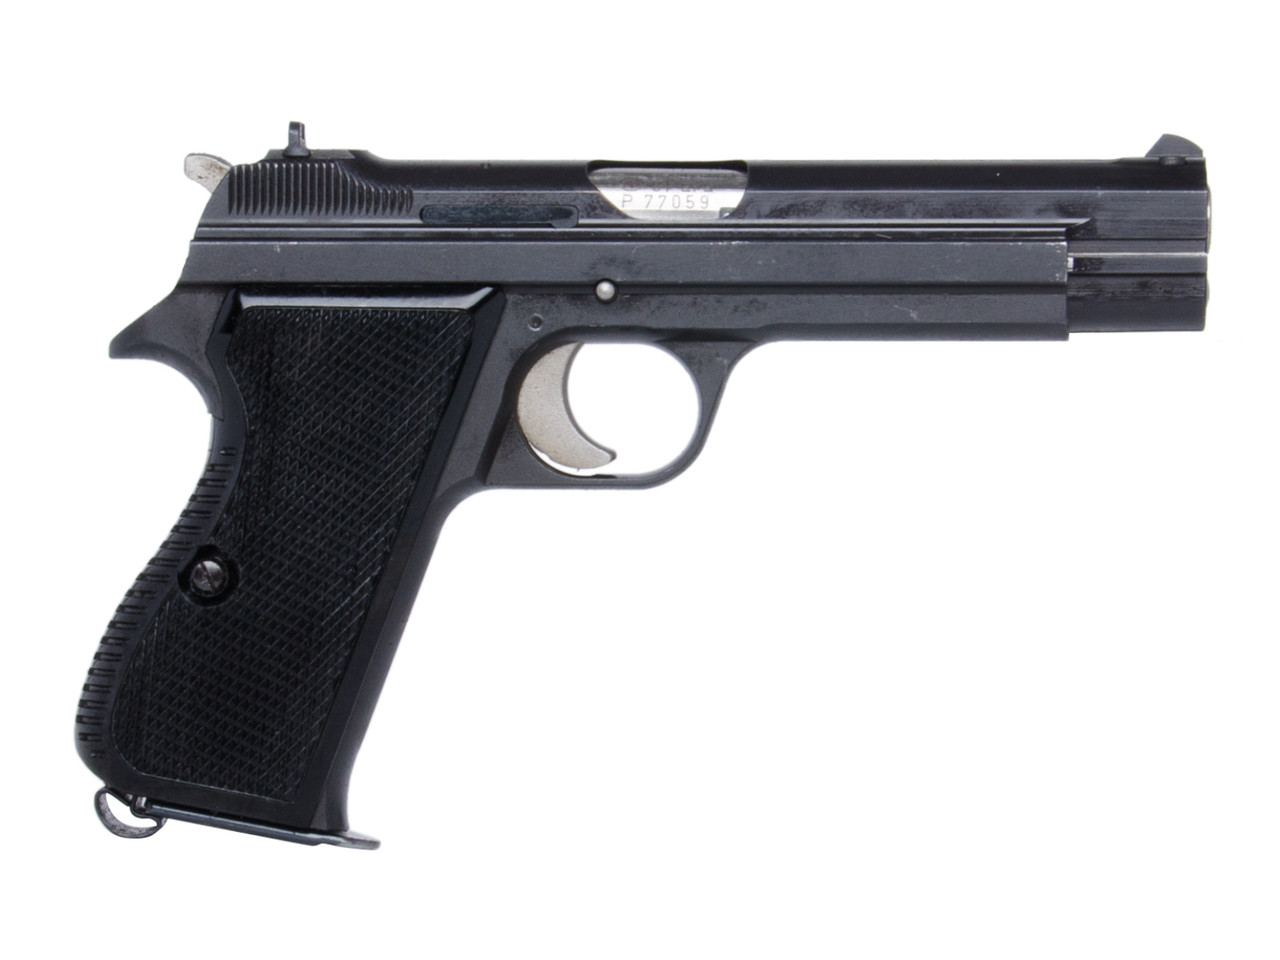 Swiss SIG P210 - $2400 (P210-P77059) - Edelweiss Arms